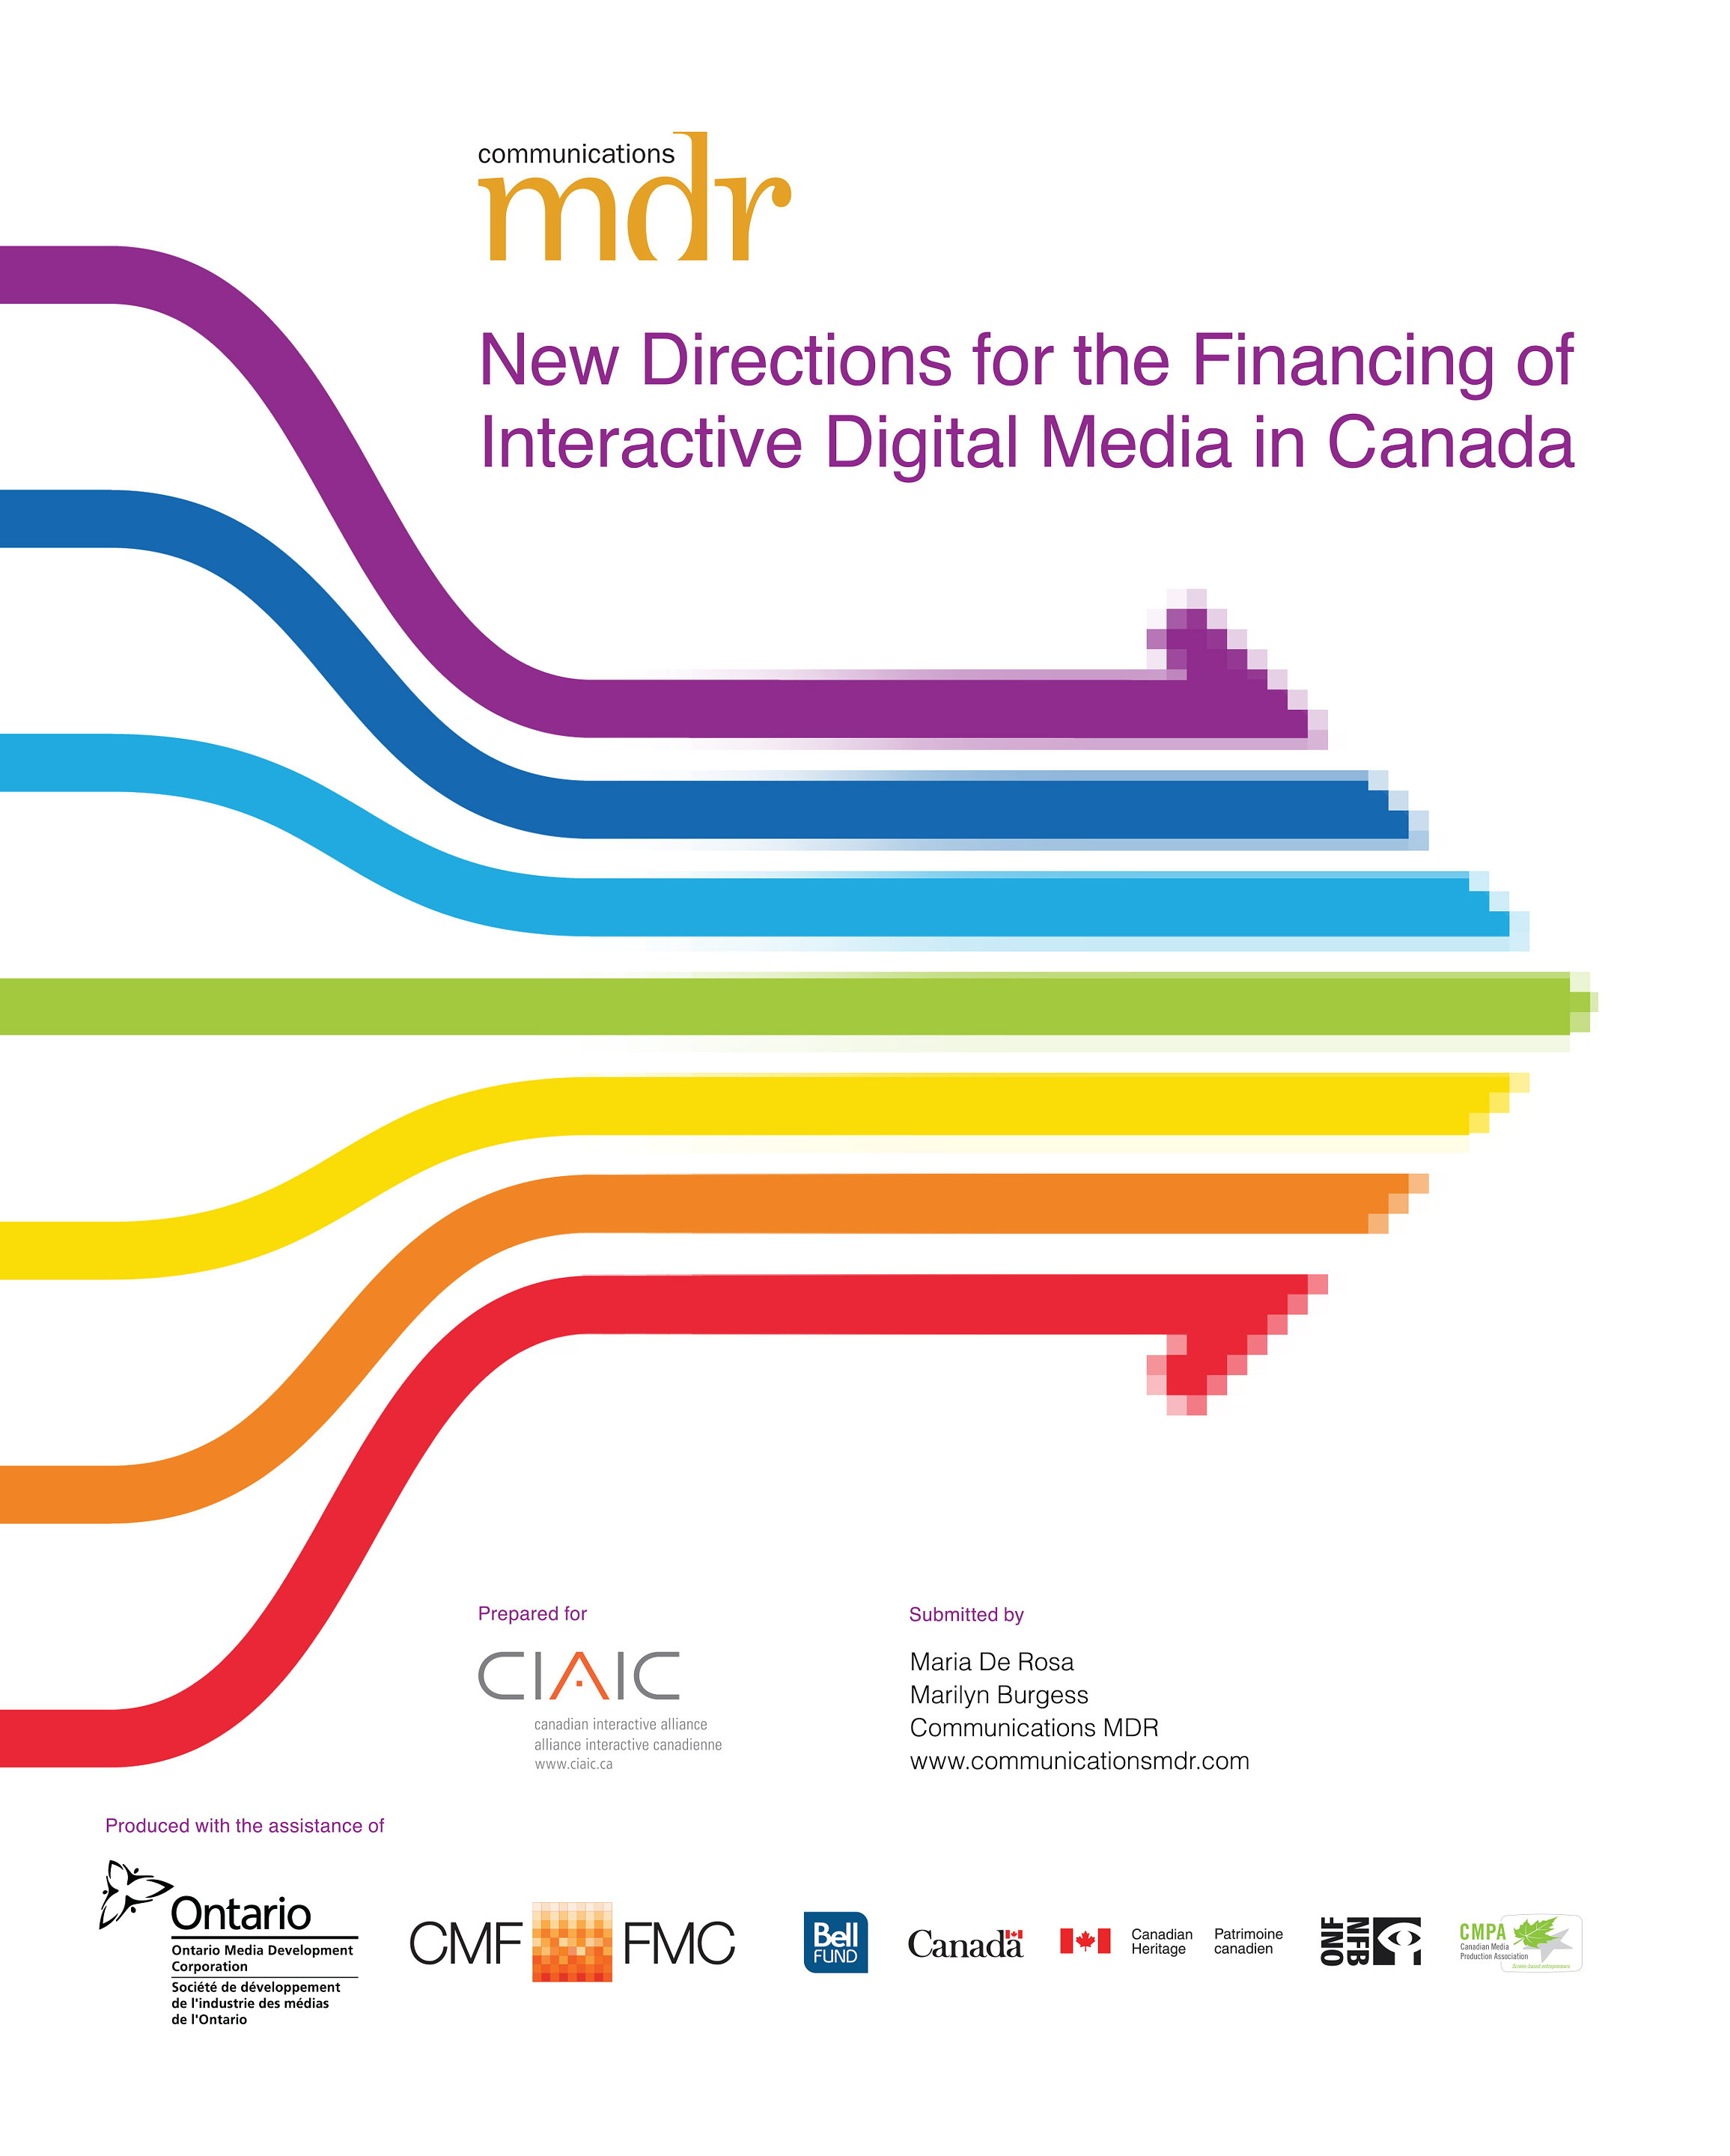 New Directions for the Financing of Interactive Digital Media in Canada